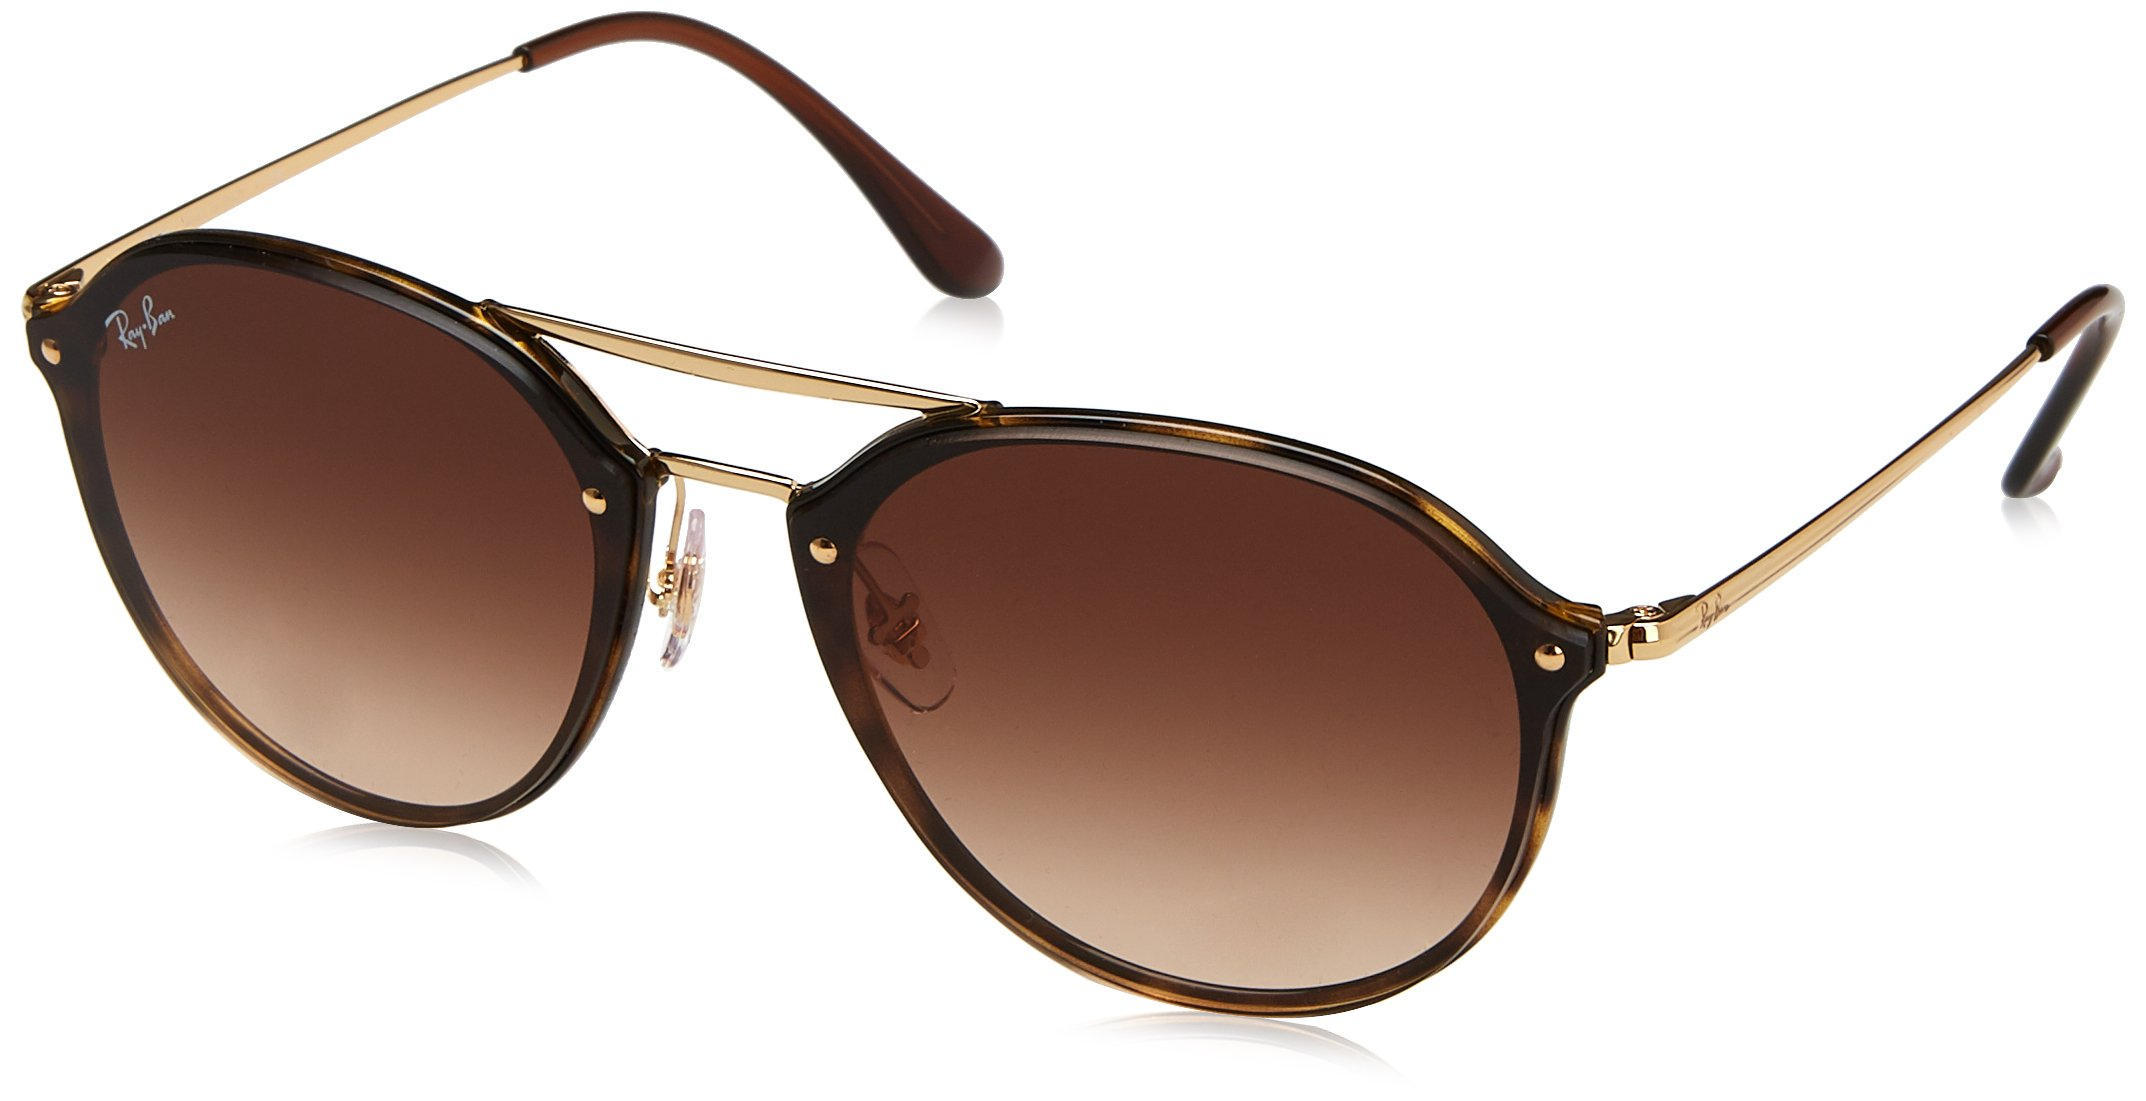 Ray-Ban 0rb4292n710/1362blaze Doublebridge Square Sunglasses, Light Havana, 62 mm by Ray-Ban (Image #1)